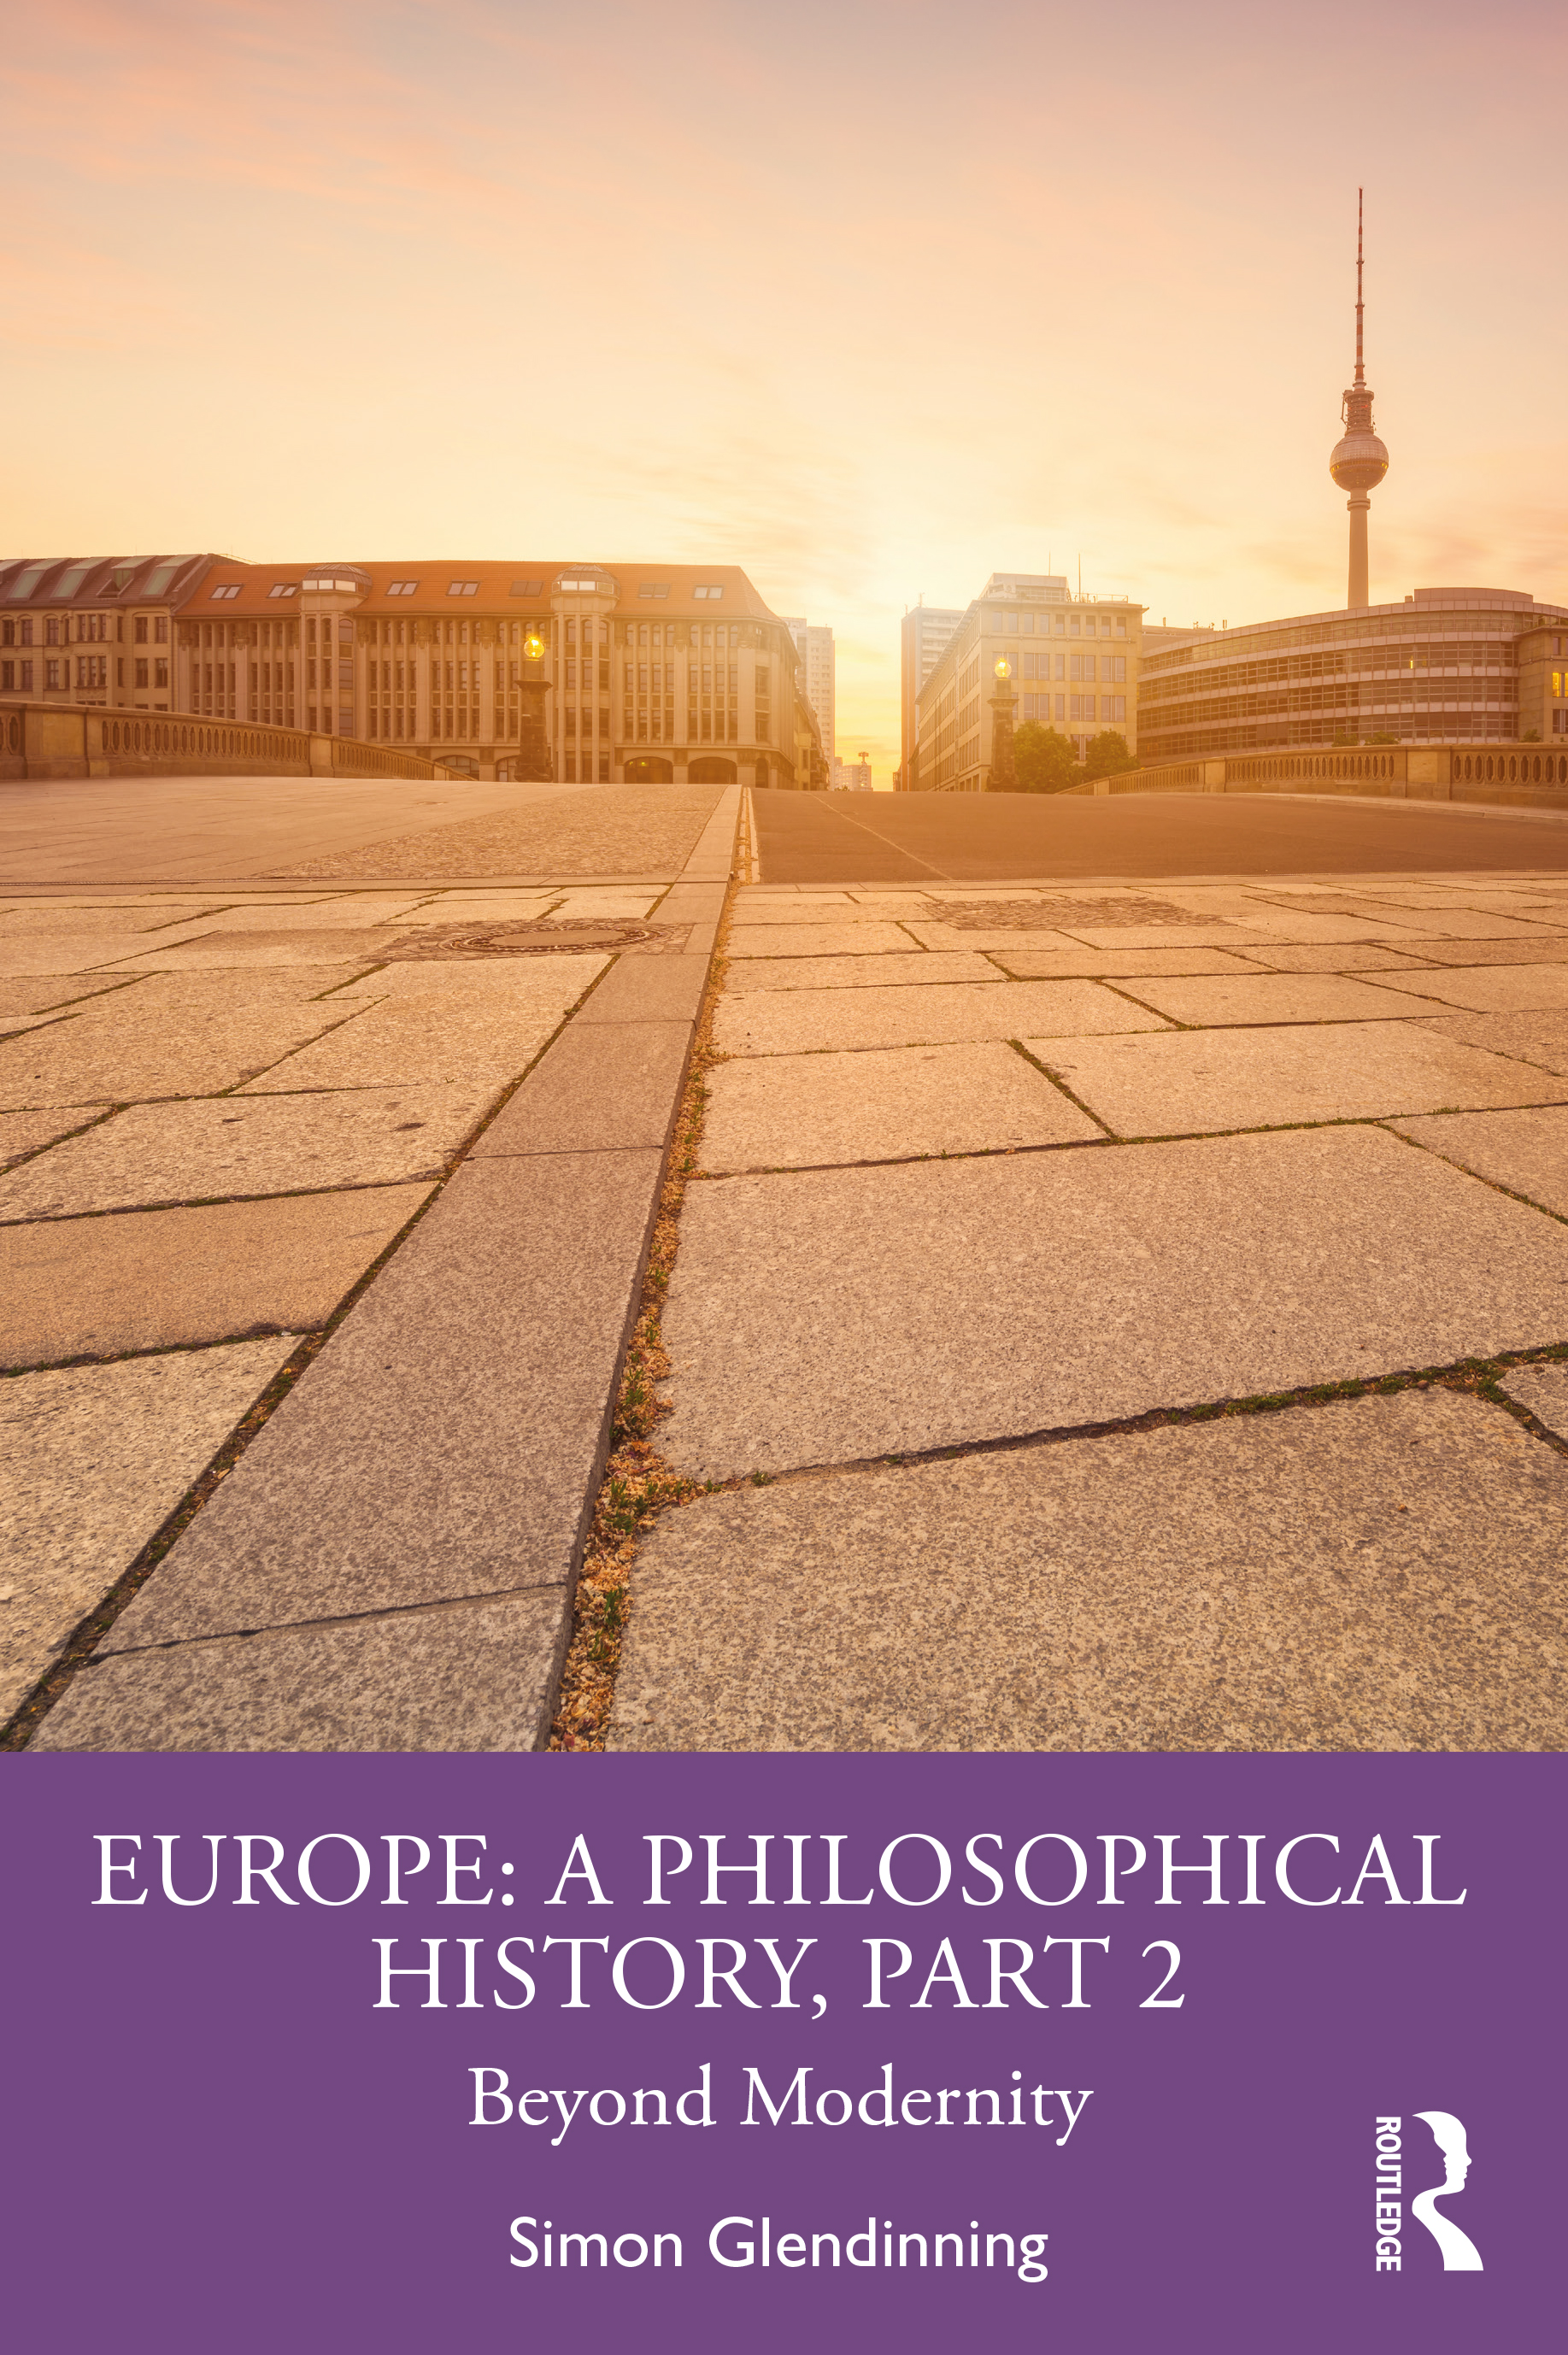 Europe: A Philosophical History Part 2